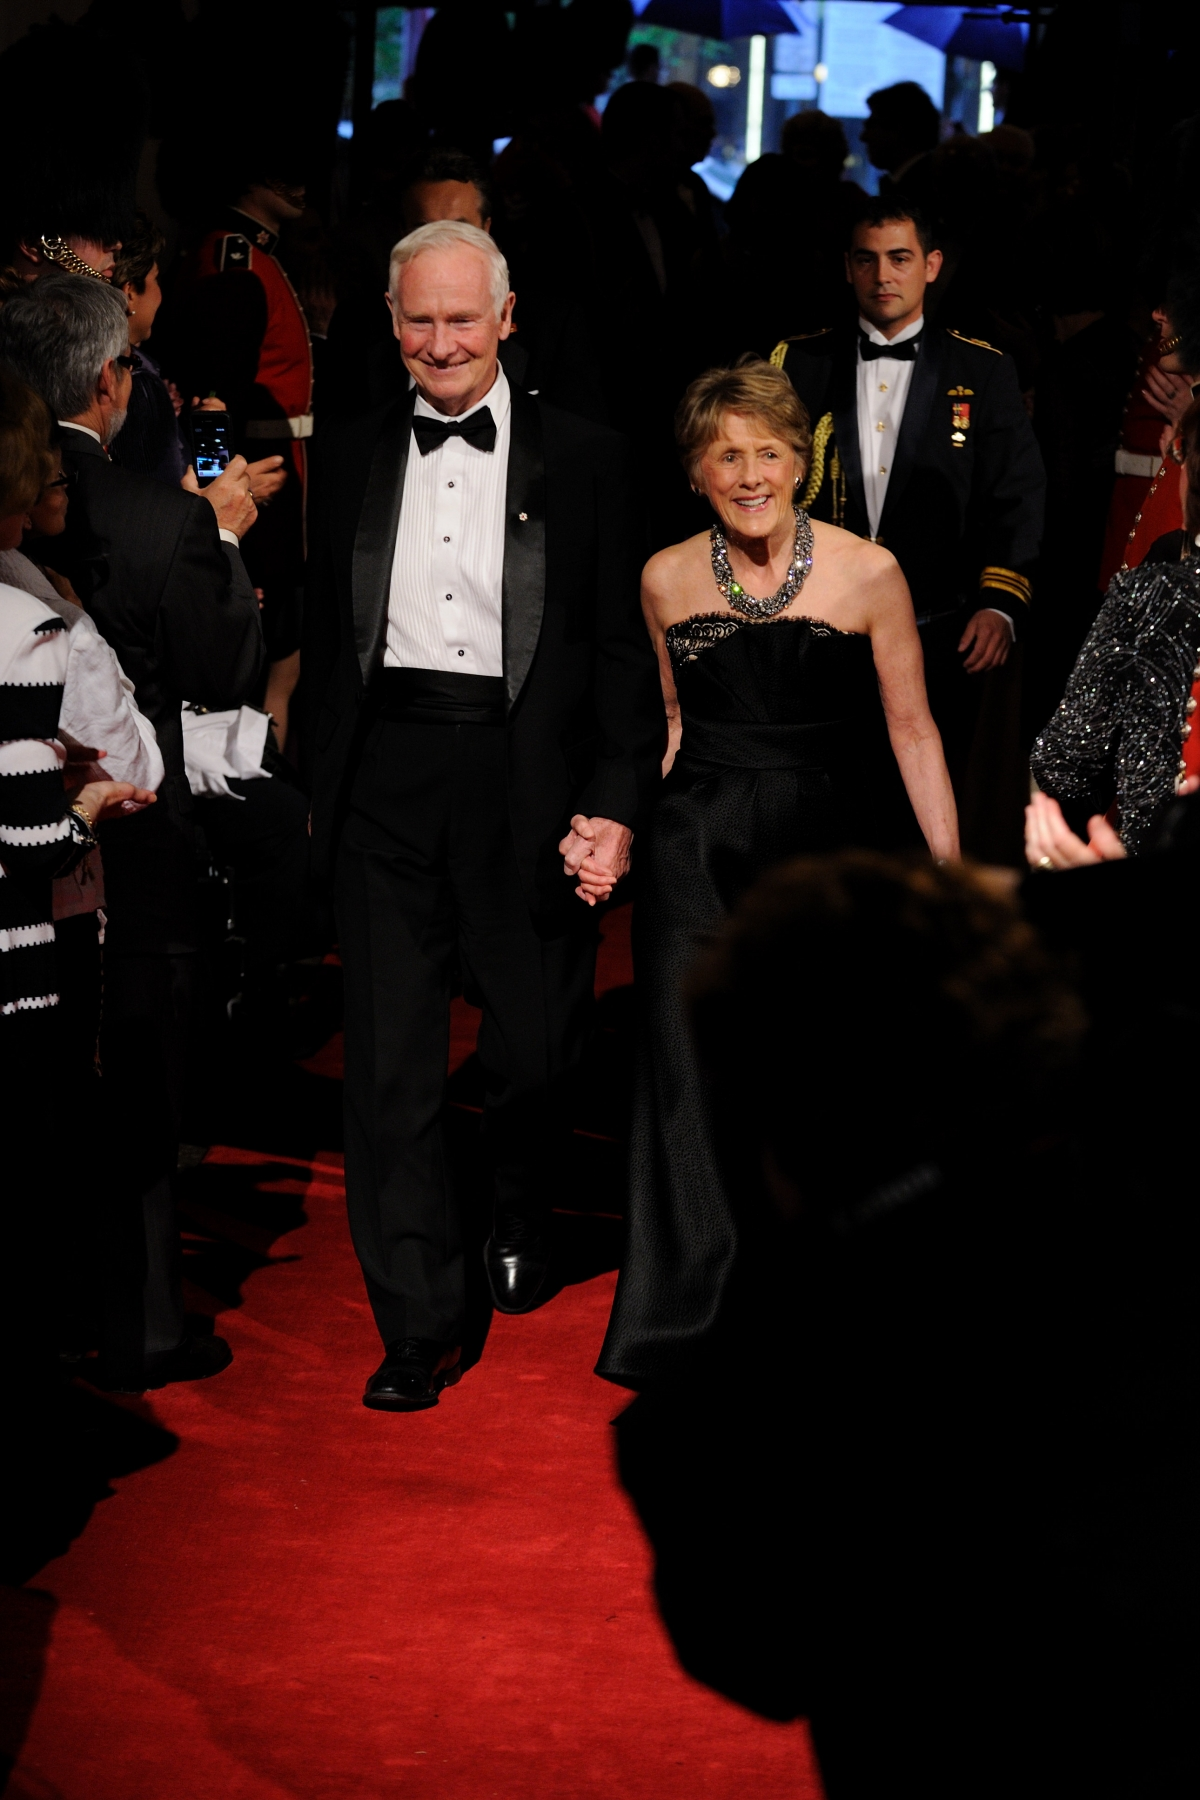 Their Excellencies arrived on the red carpet at the 2011 Governor General's Performing Arts Awards Gala at the National Arts Centre on Saturday, May 14, 2011.